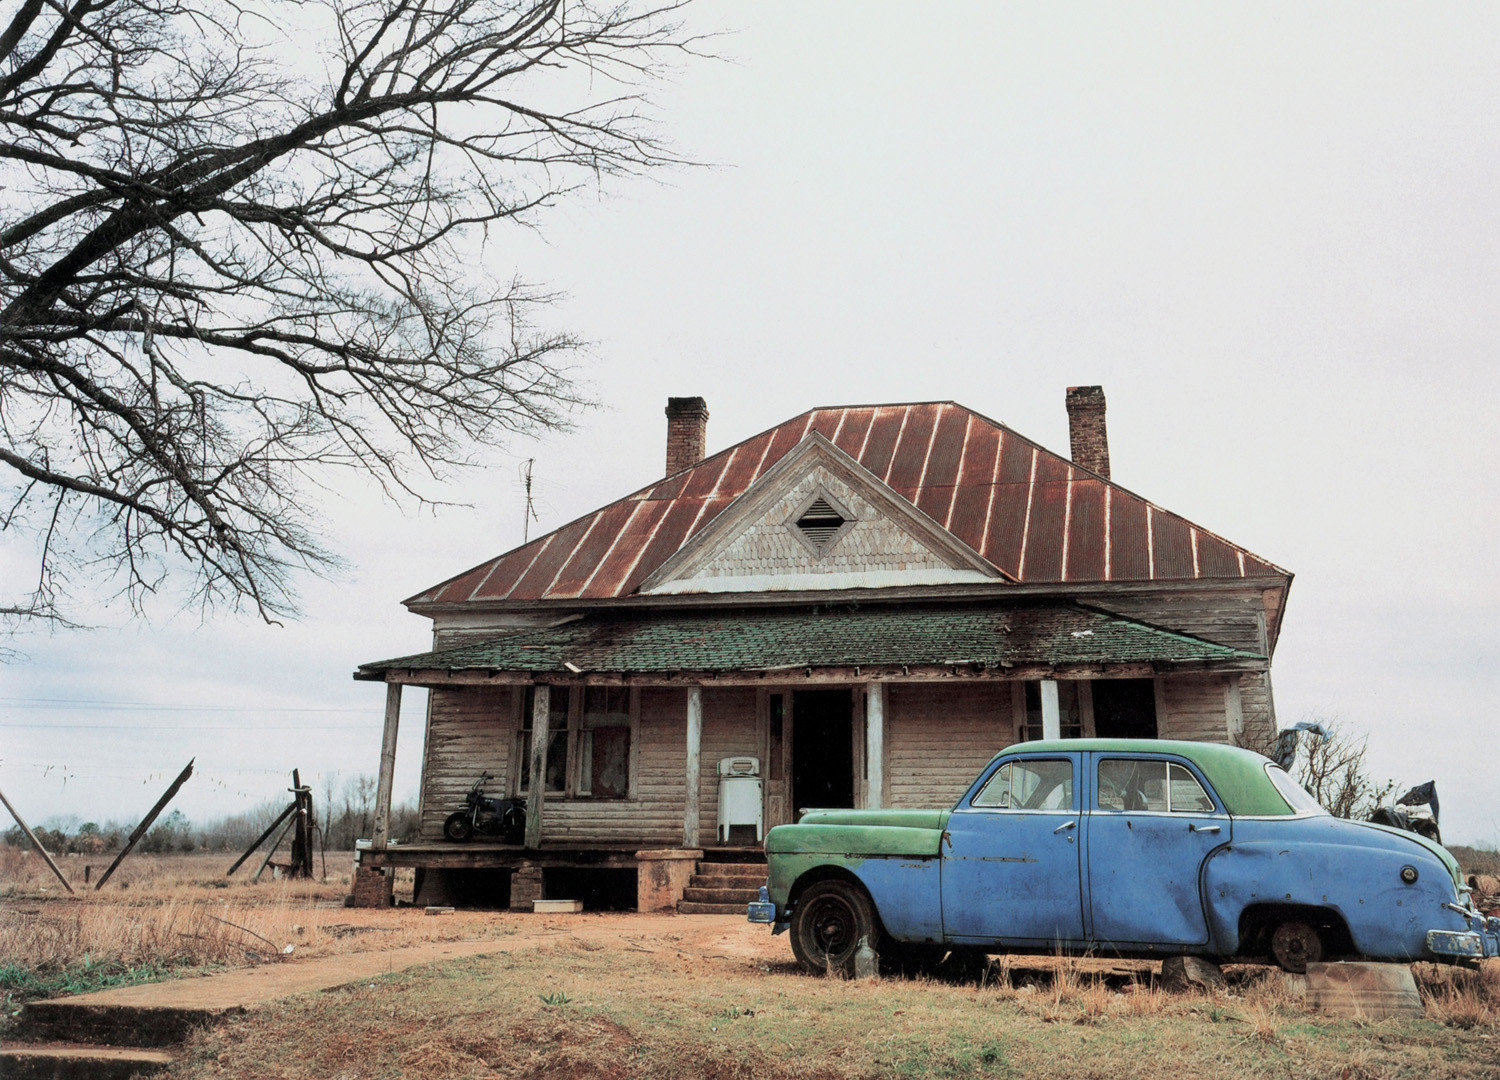 William Christenberry, House and Car, near Akron, Alabama, 1981